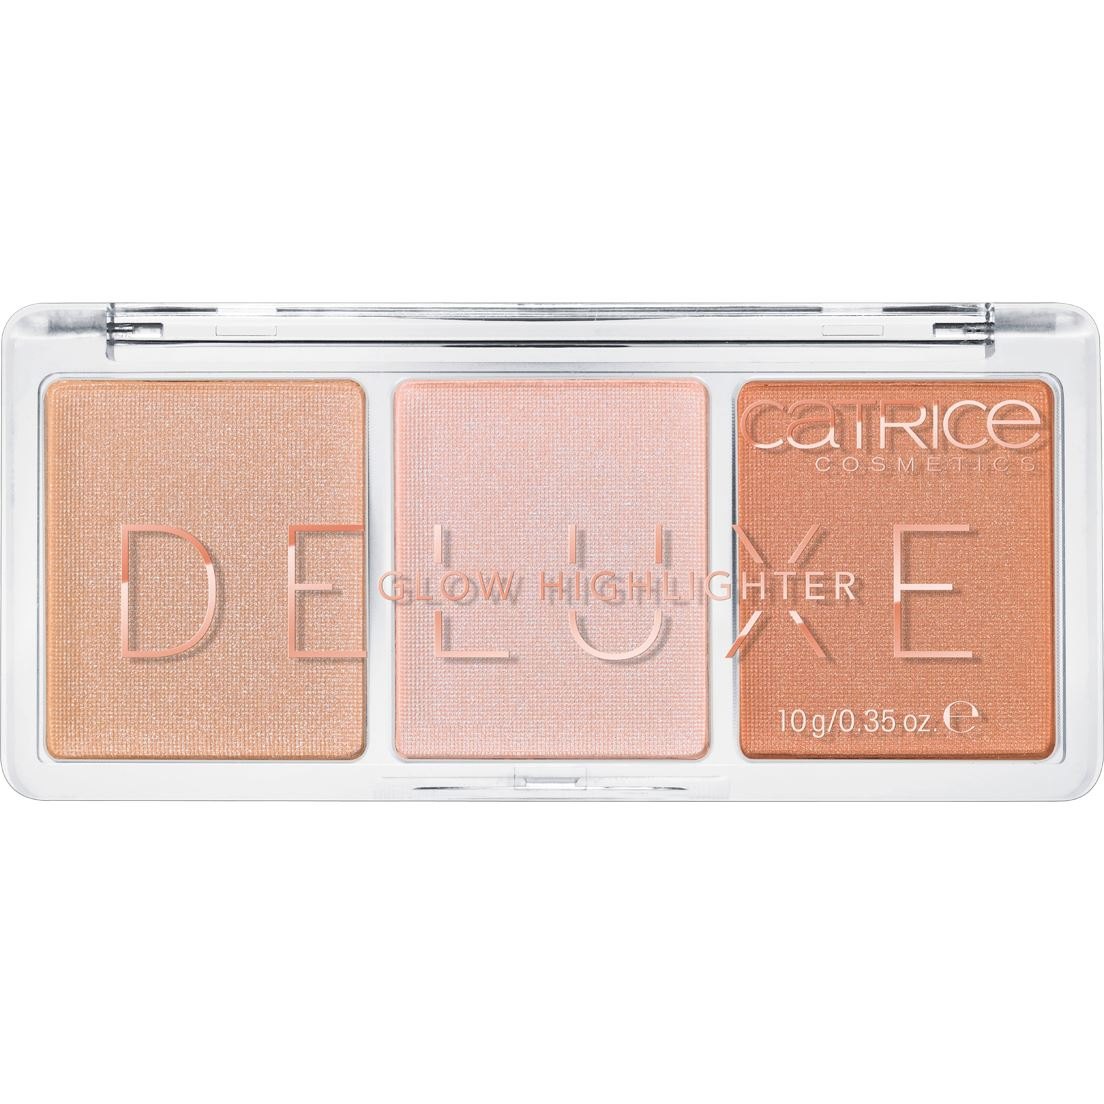 catrice-deluxe-glow-highlighters.jpg